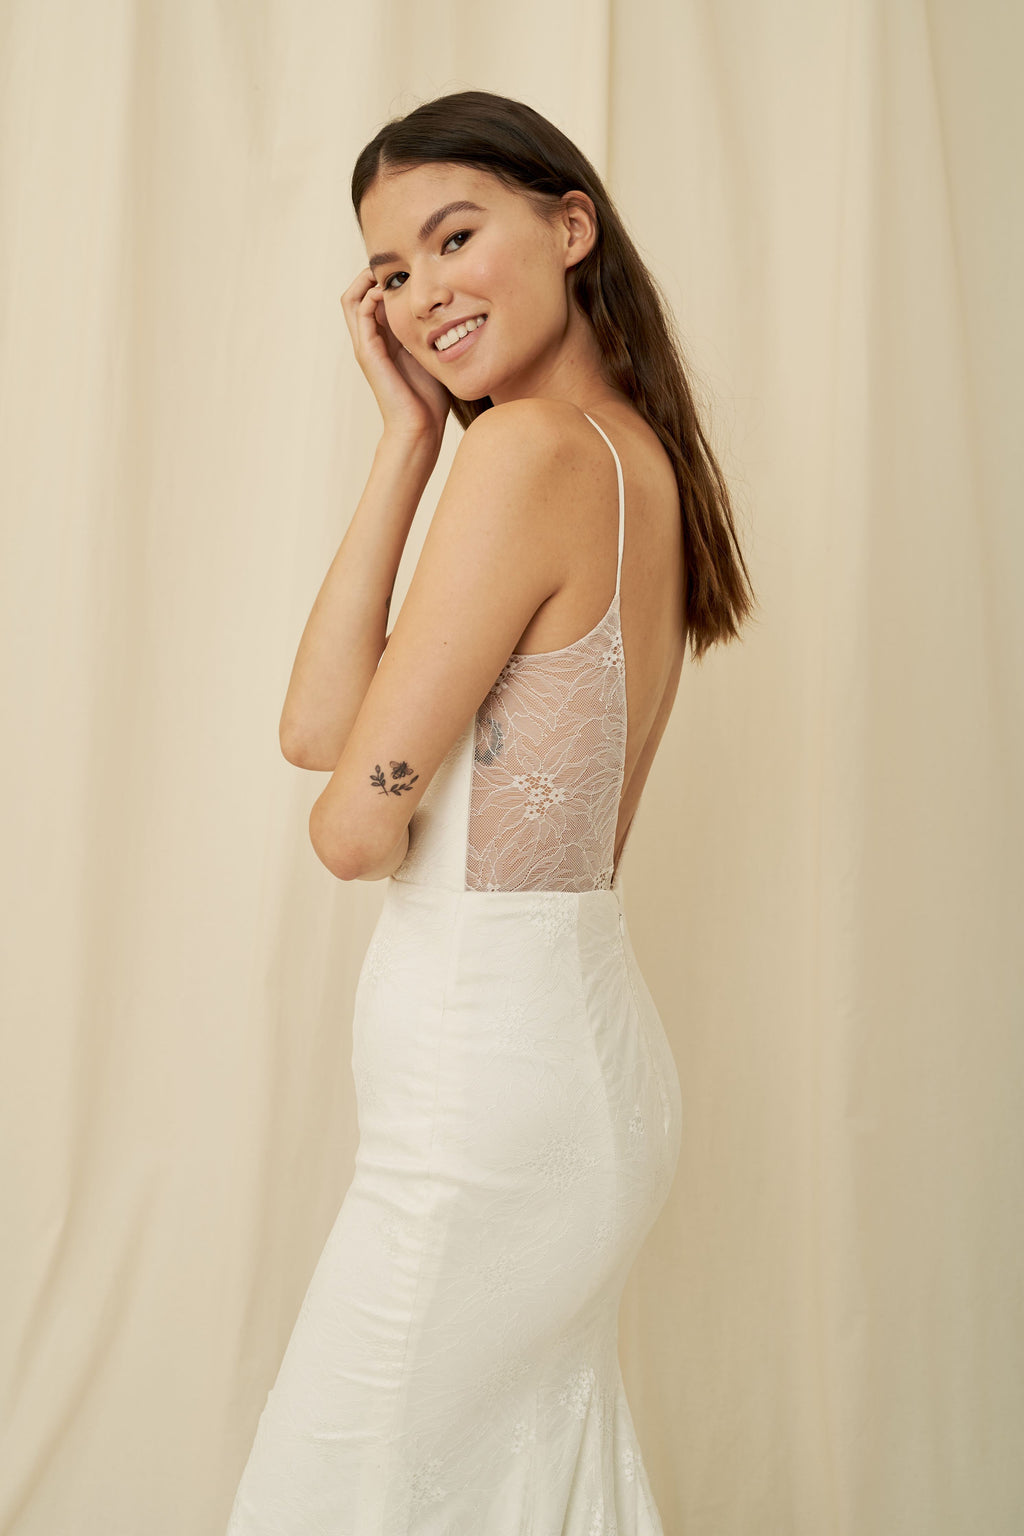 Lightweight mermaid gown with delicate lace, an open back, and a long train